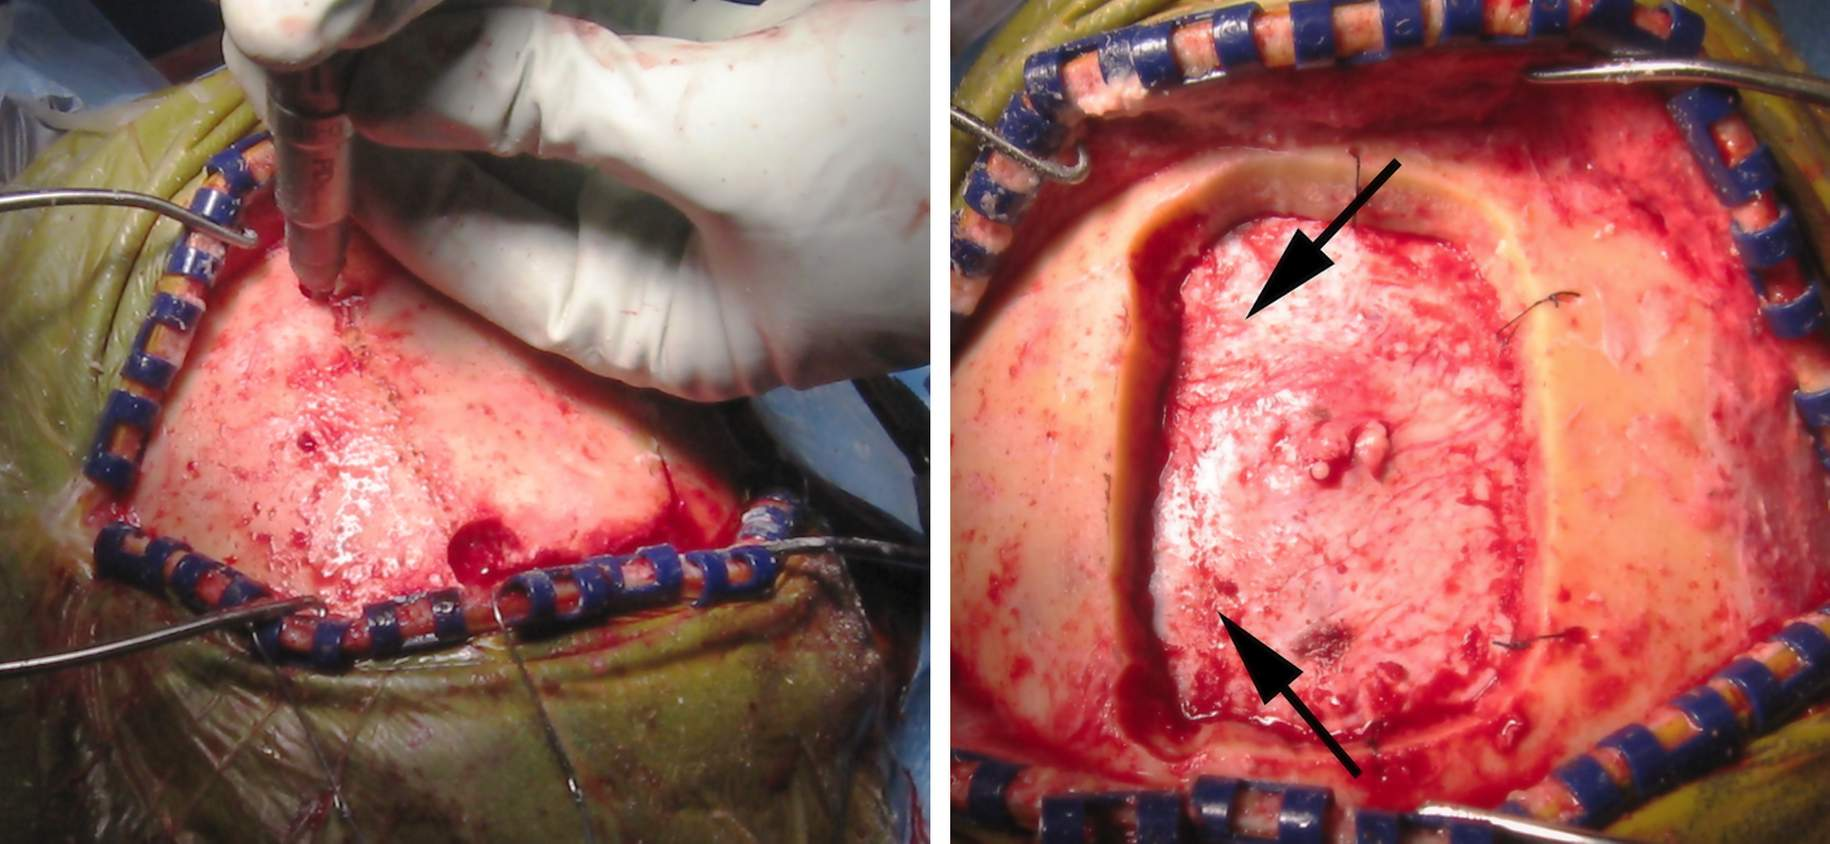 Figure 5:  The last bony cut should be made over the venous sinus (left image).  This maneuver allows timely elevation of the bone flap if bleeding is encountered and an injury to the sinus is suspected. If the lesion extends to near the sinus or interhemispheric fissure, the corresponding length of the sinus is exposed (right image, arrows point to the location of the venous sinus).